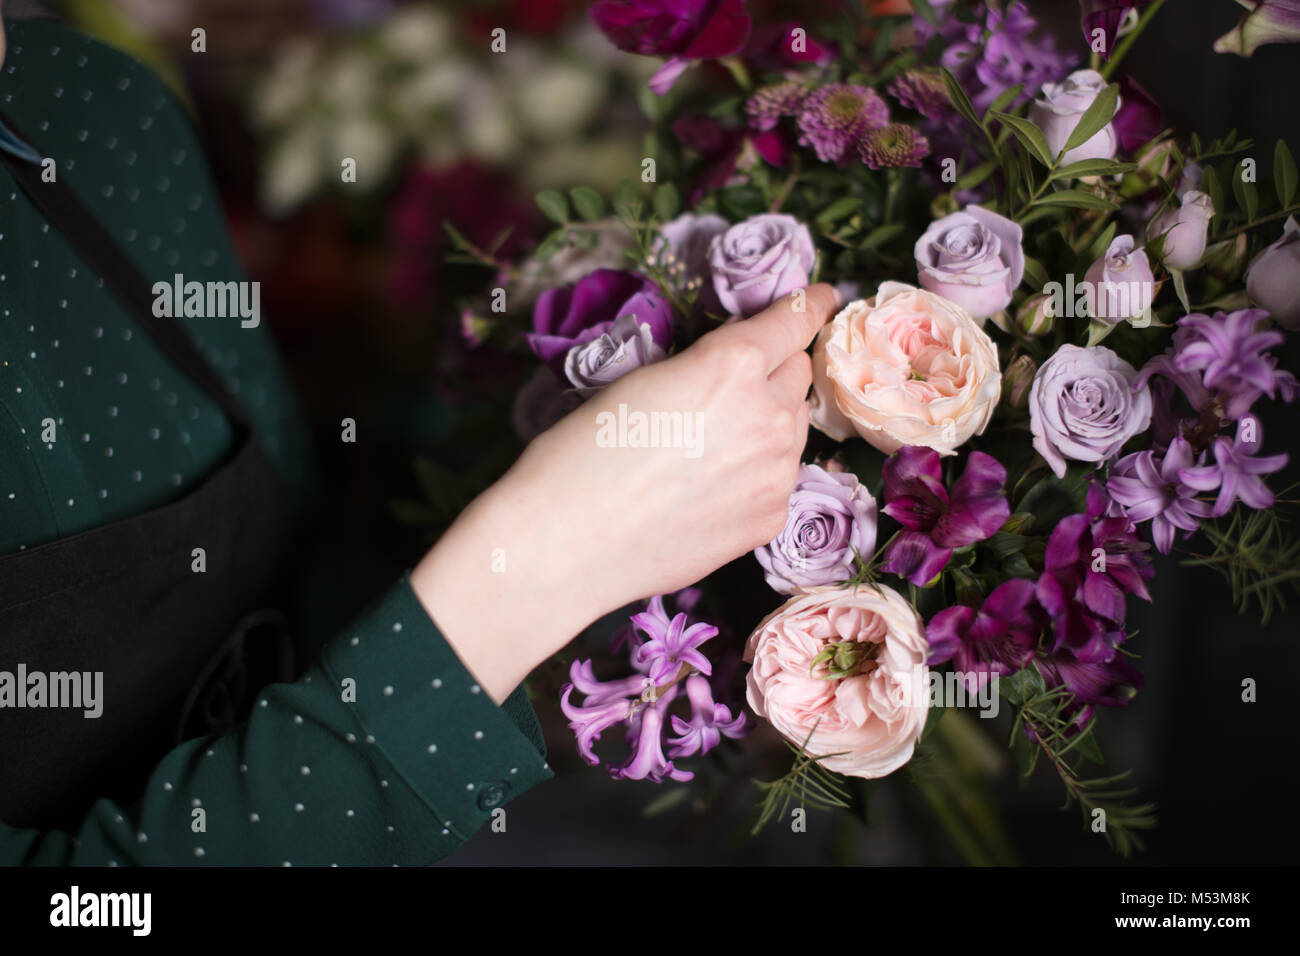 young vendor touching beautiful roses at shop - Stock Image